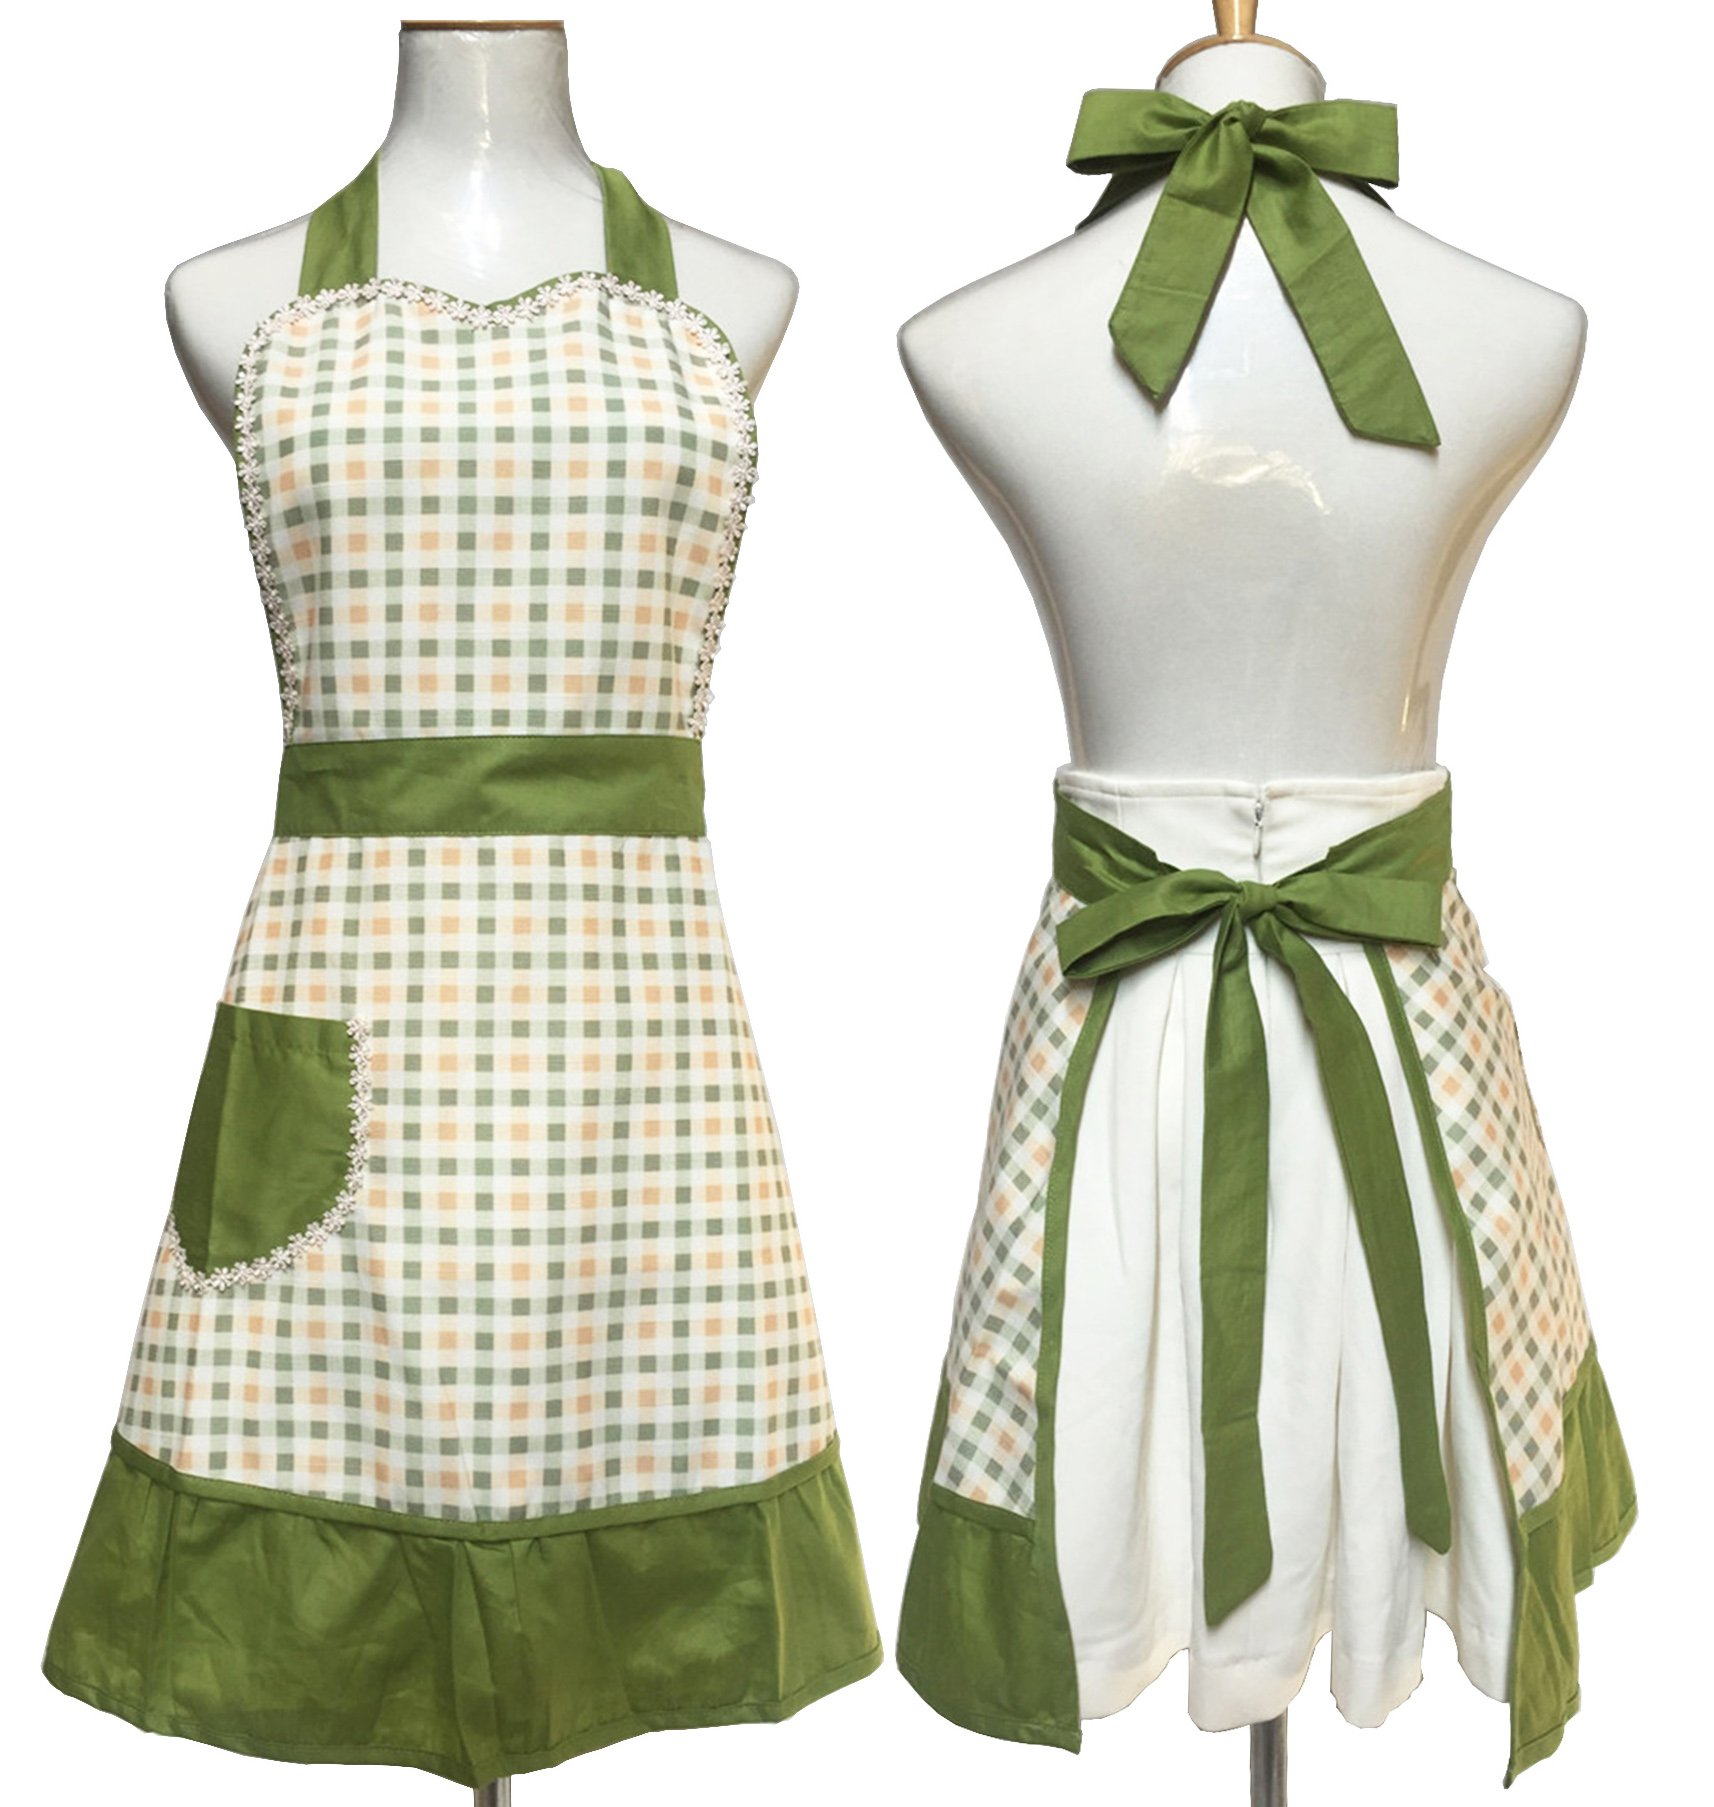 Lovely Sweetheart Retro Kitchen Aprons Woman Girl Cotton